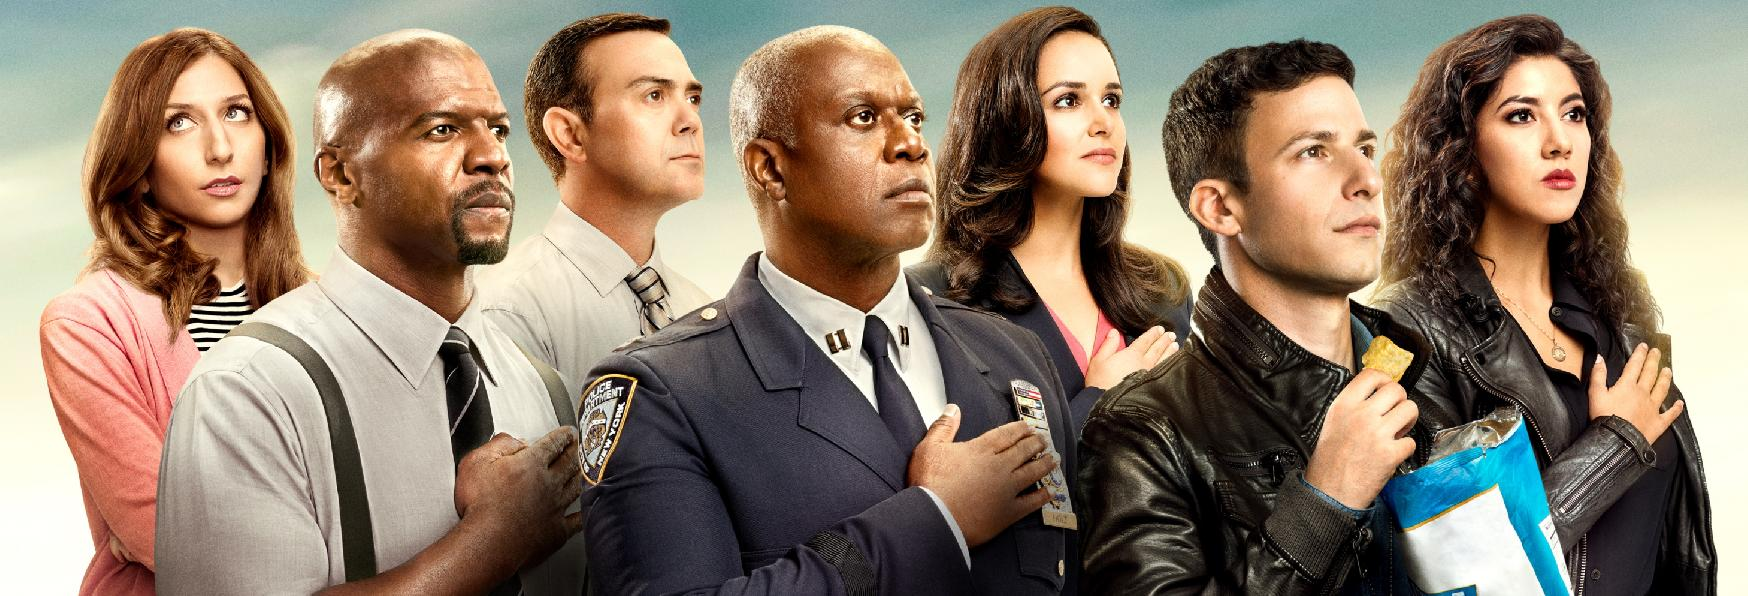 Brooklyn Nine-Nine: un'incredibile Trailer Parodia per la 6° Stagione